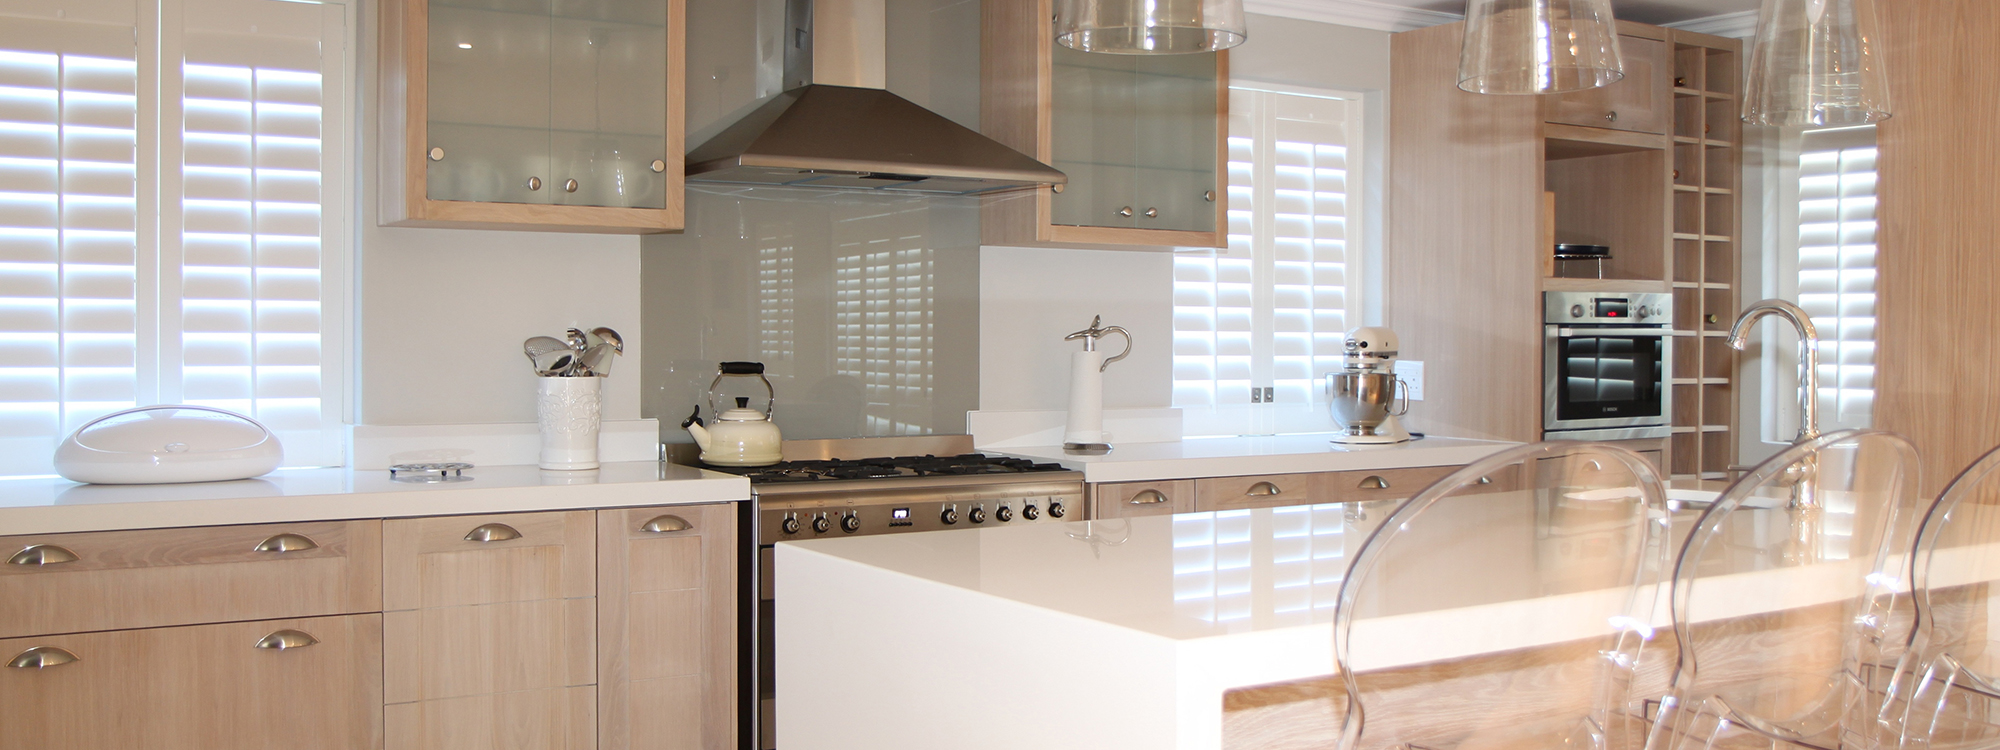 Decowood-shutters-kitchen-eco-friendly